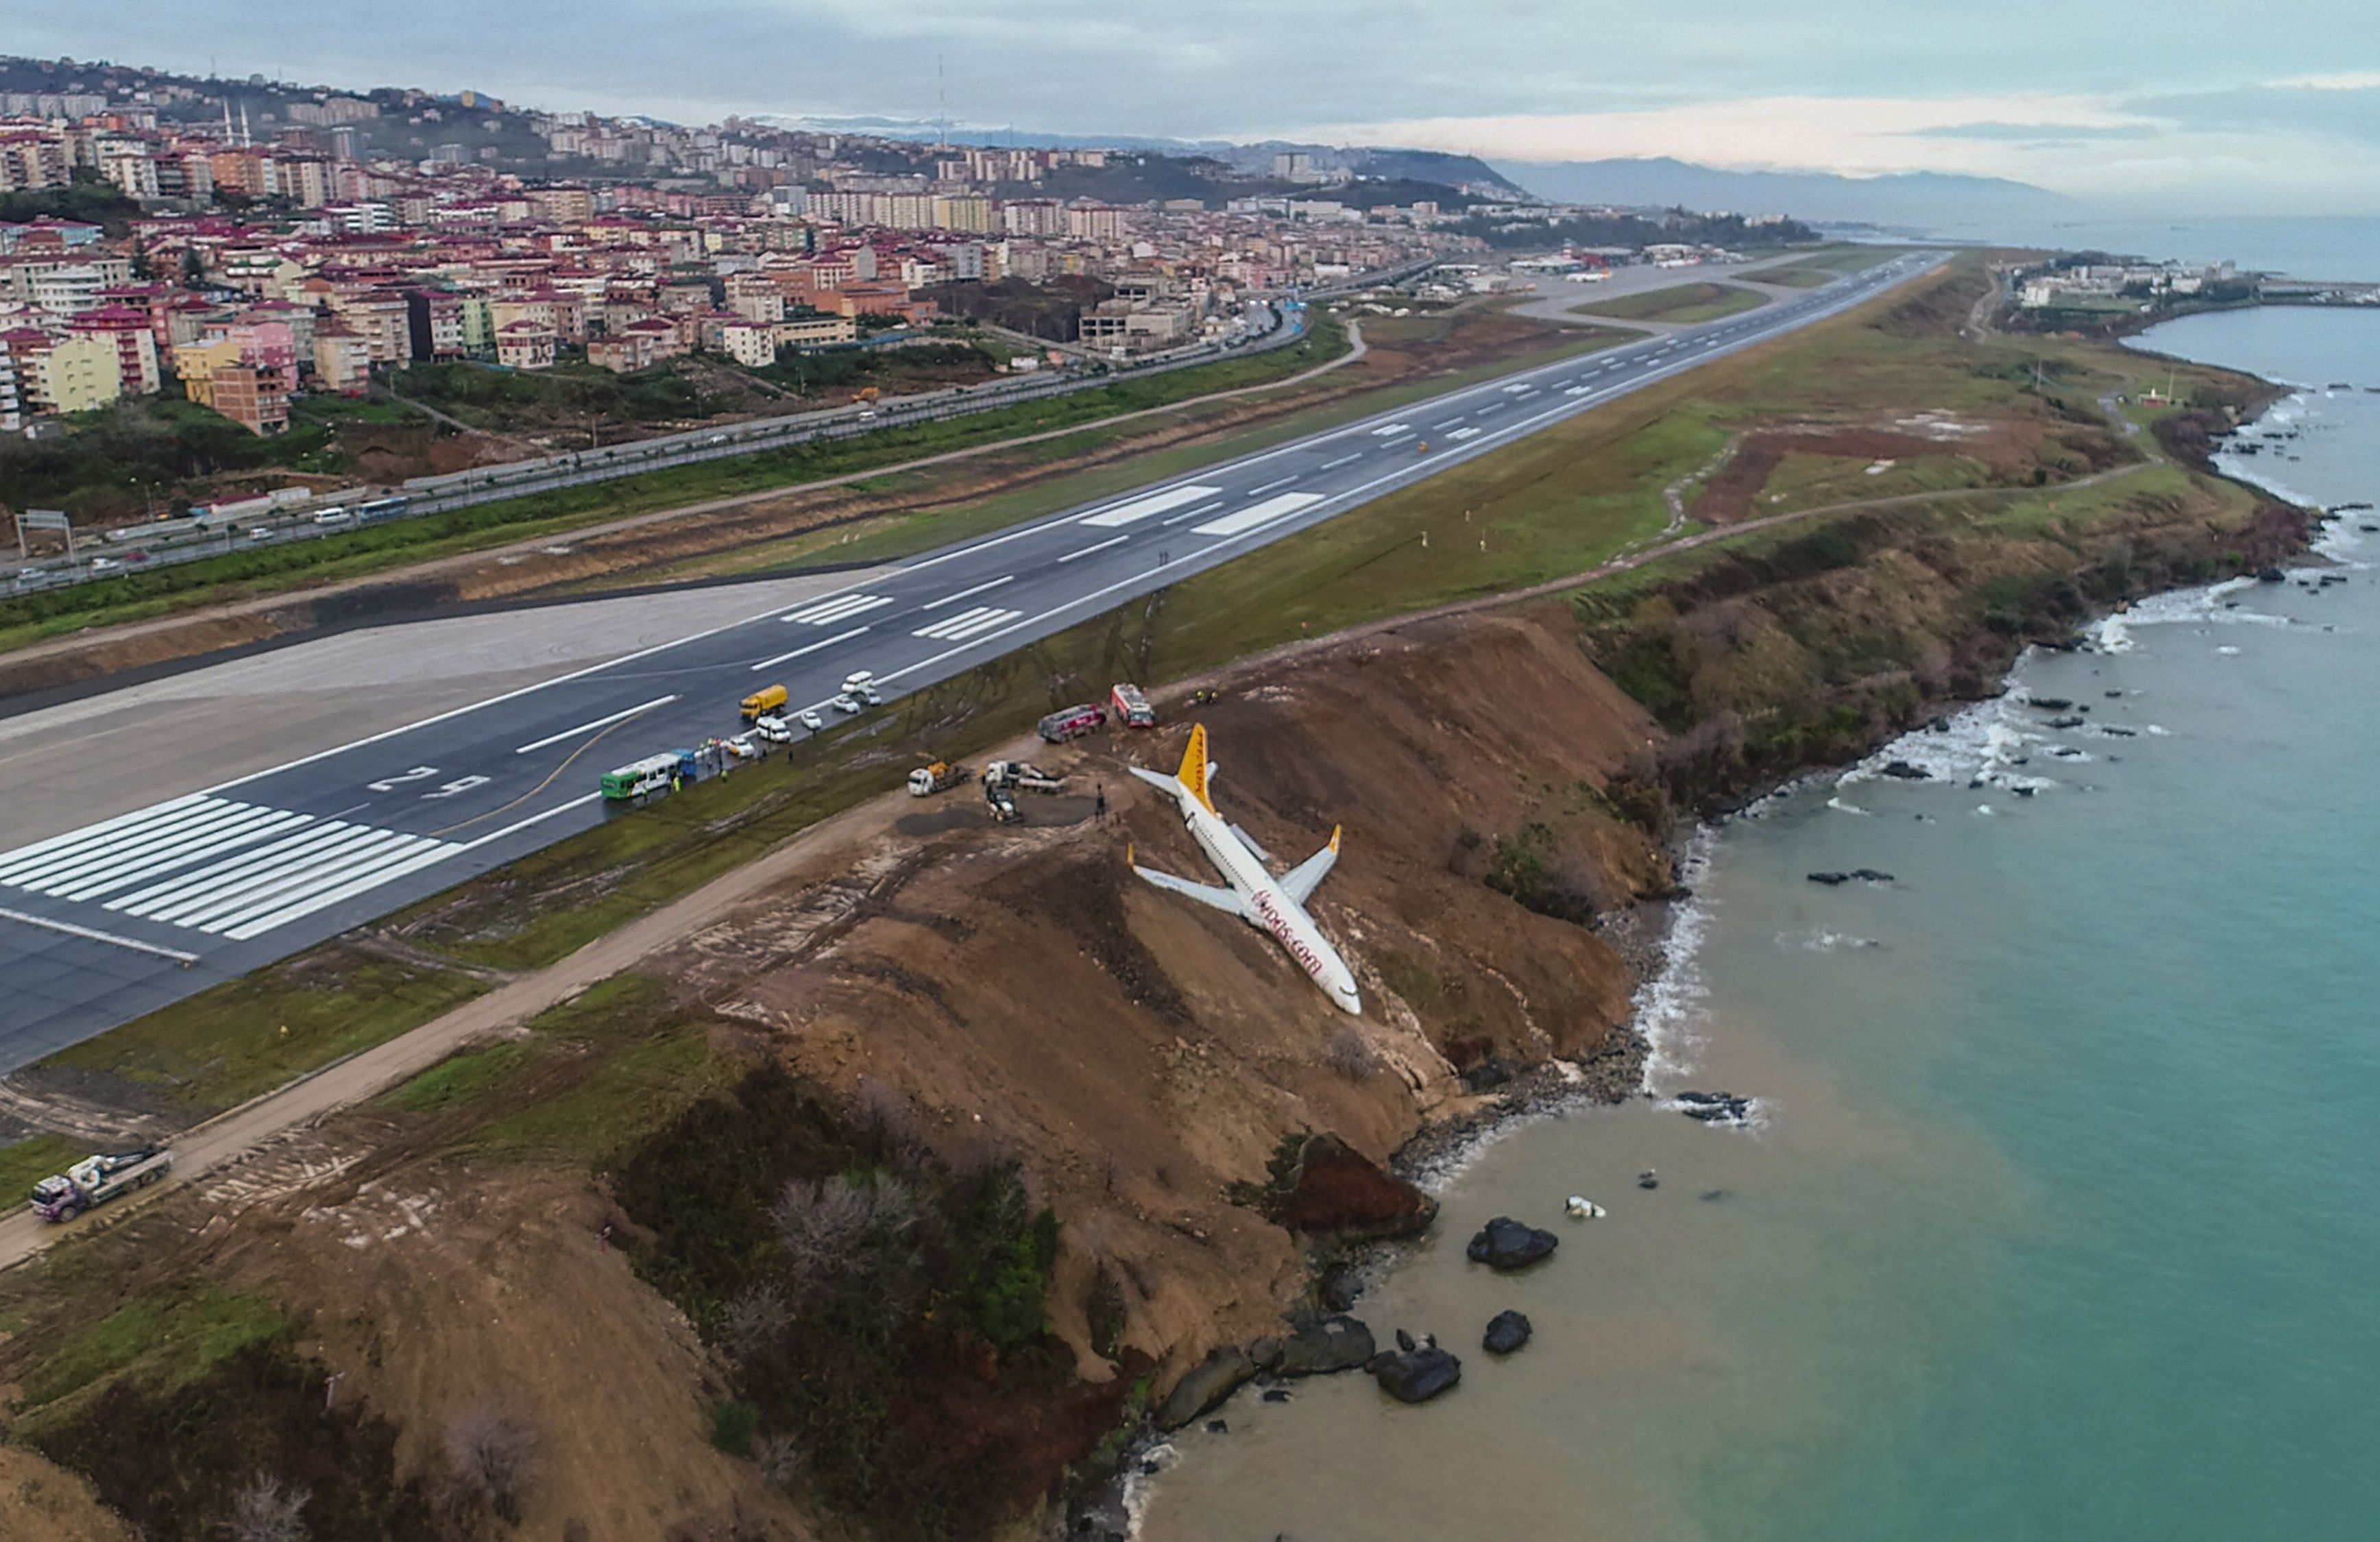 A Pegasus Airlines Boeing 737 passenger plane was stuck in mud on an embankment after landing at Trabzon's aiport on the Blac